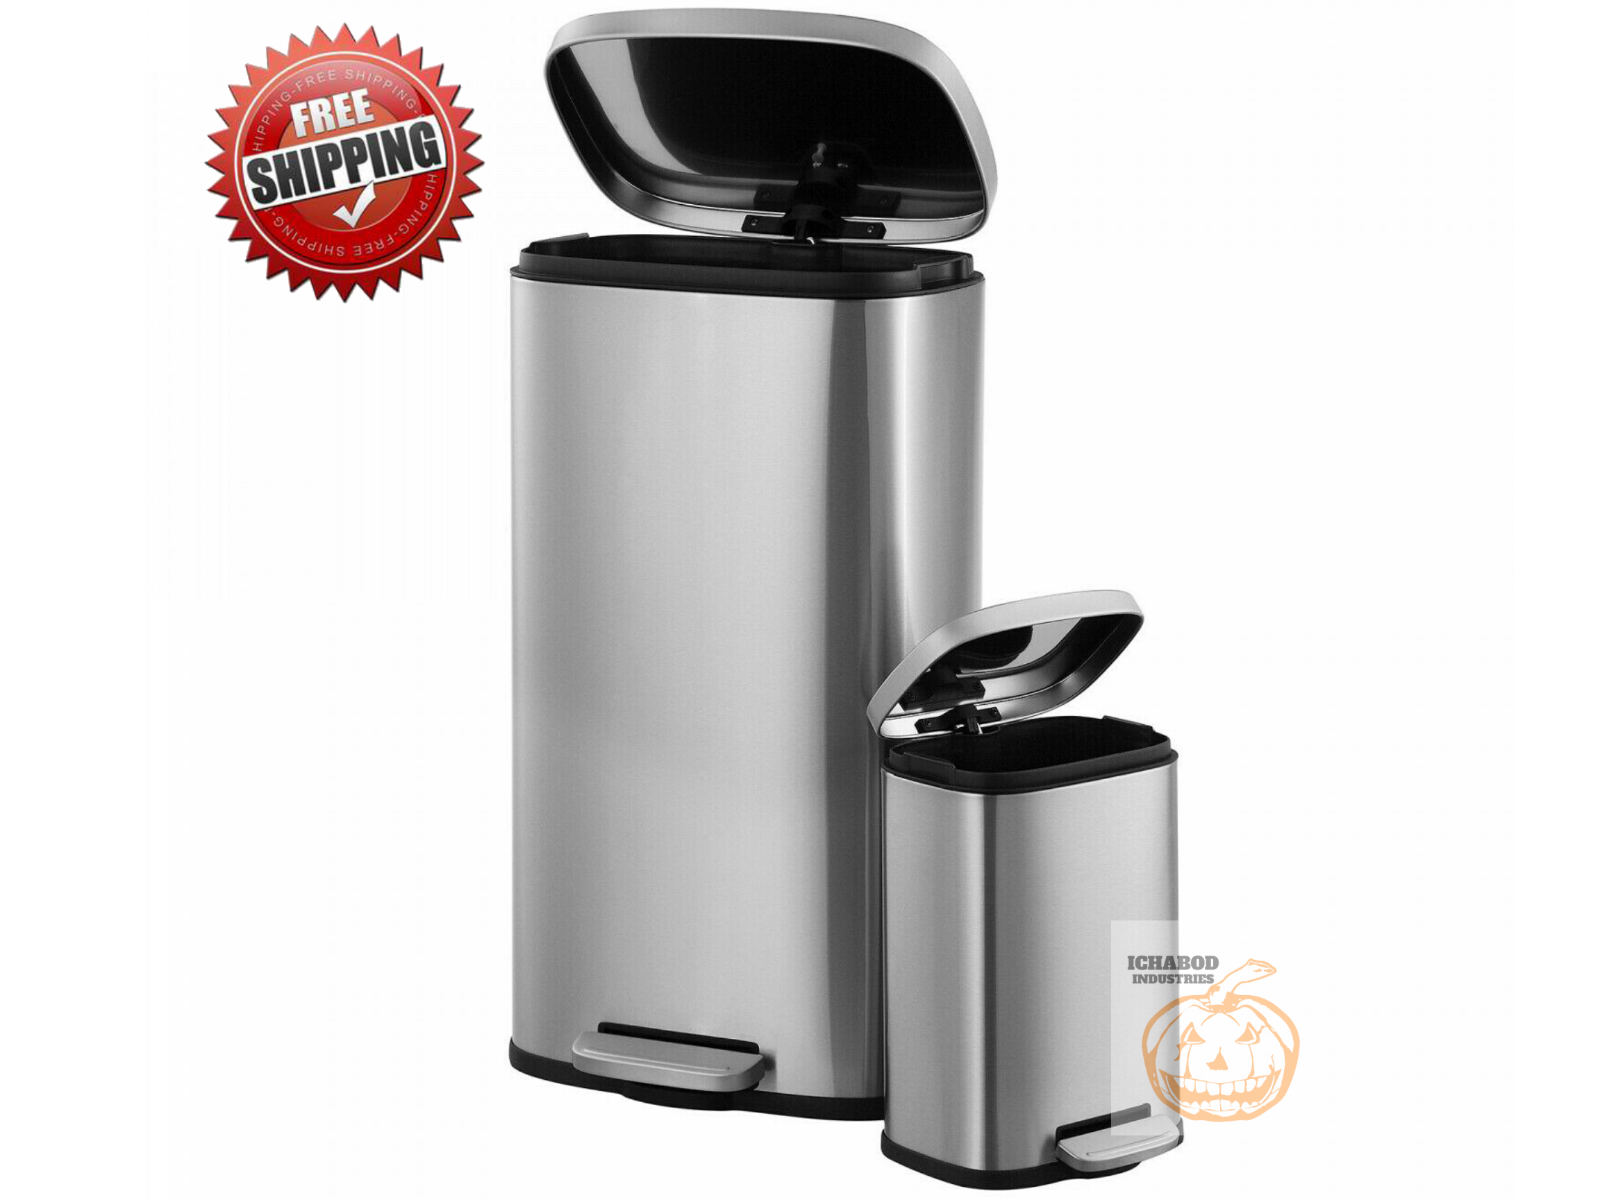 2 Pack Stainless Steel Trash Cans, 30L and 5L, 13 Gallon Kit